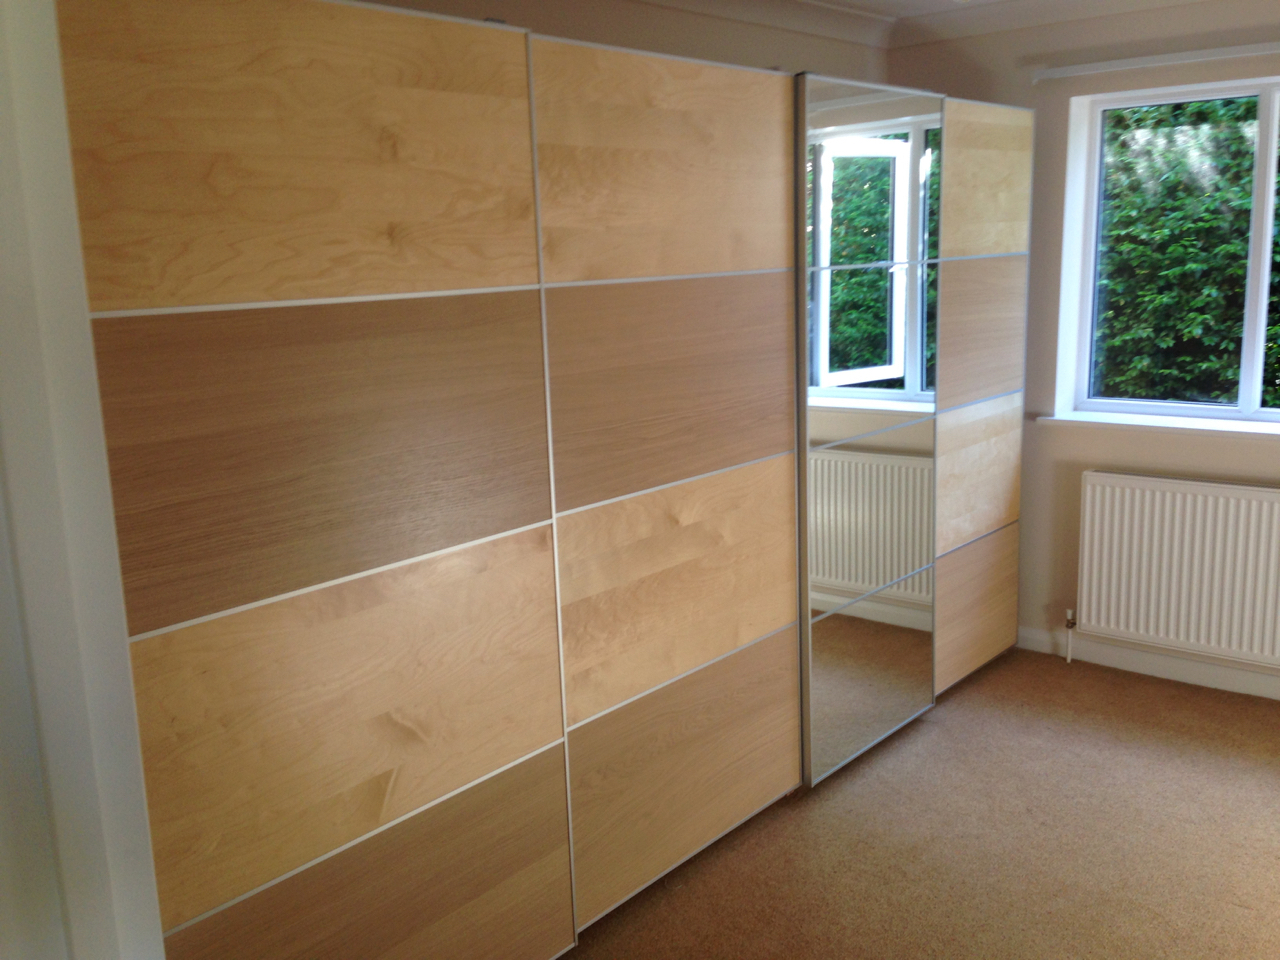 Ikea PAX sliding wardrobes with two wood types in doors assembled by www.norwichflatpack.co.uk